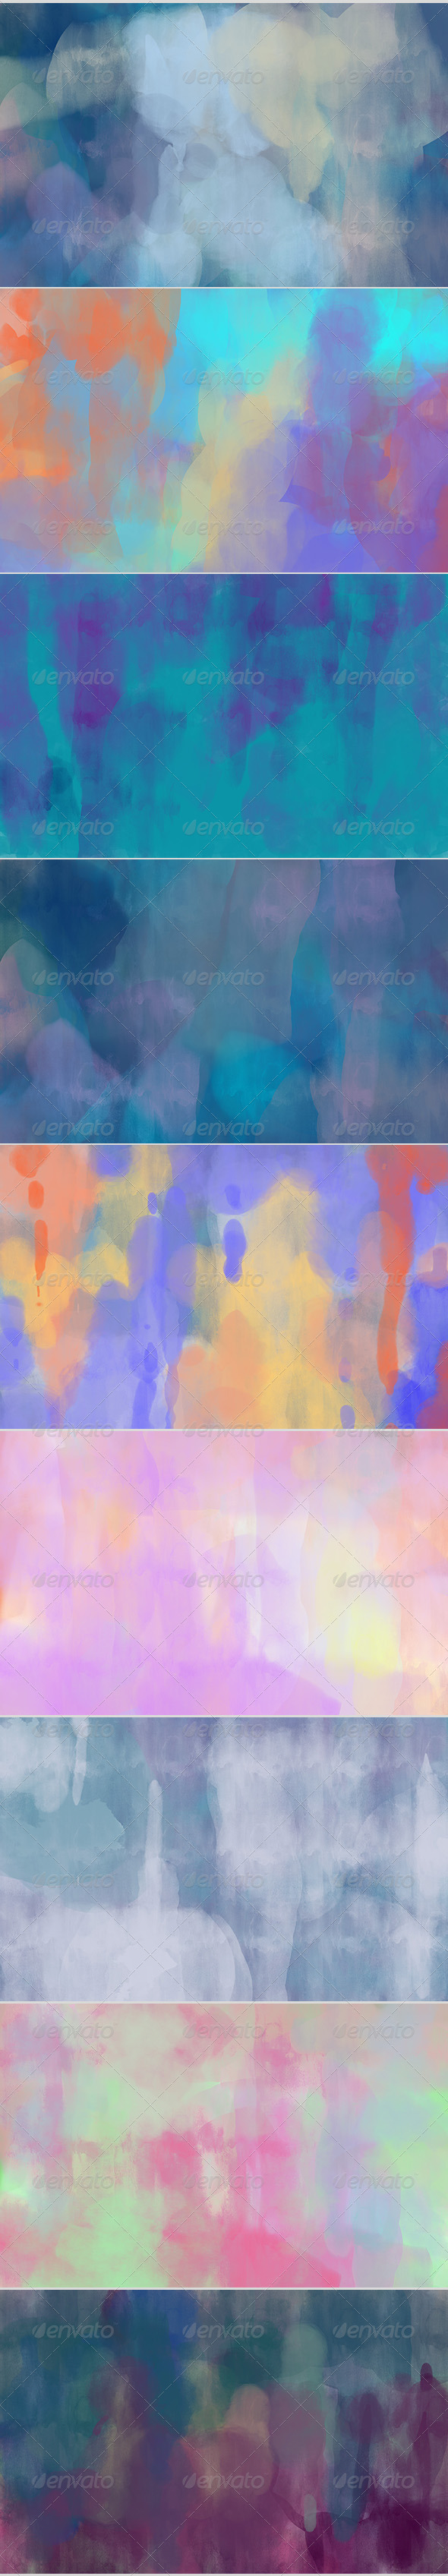 9 Colorful Backgrounds - Abstract Backgrounds